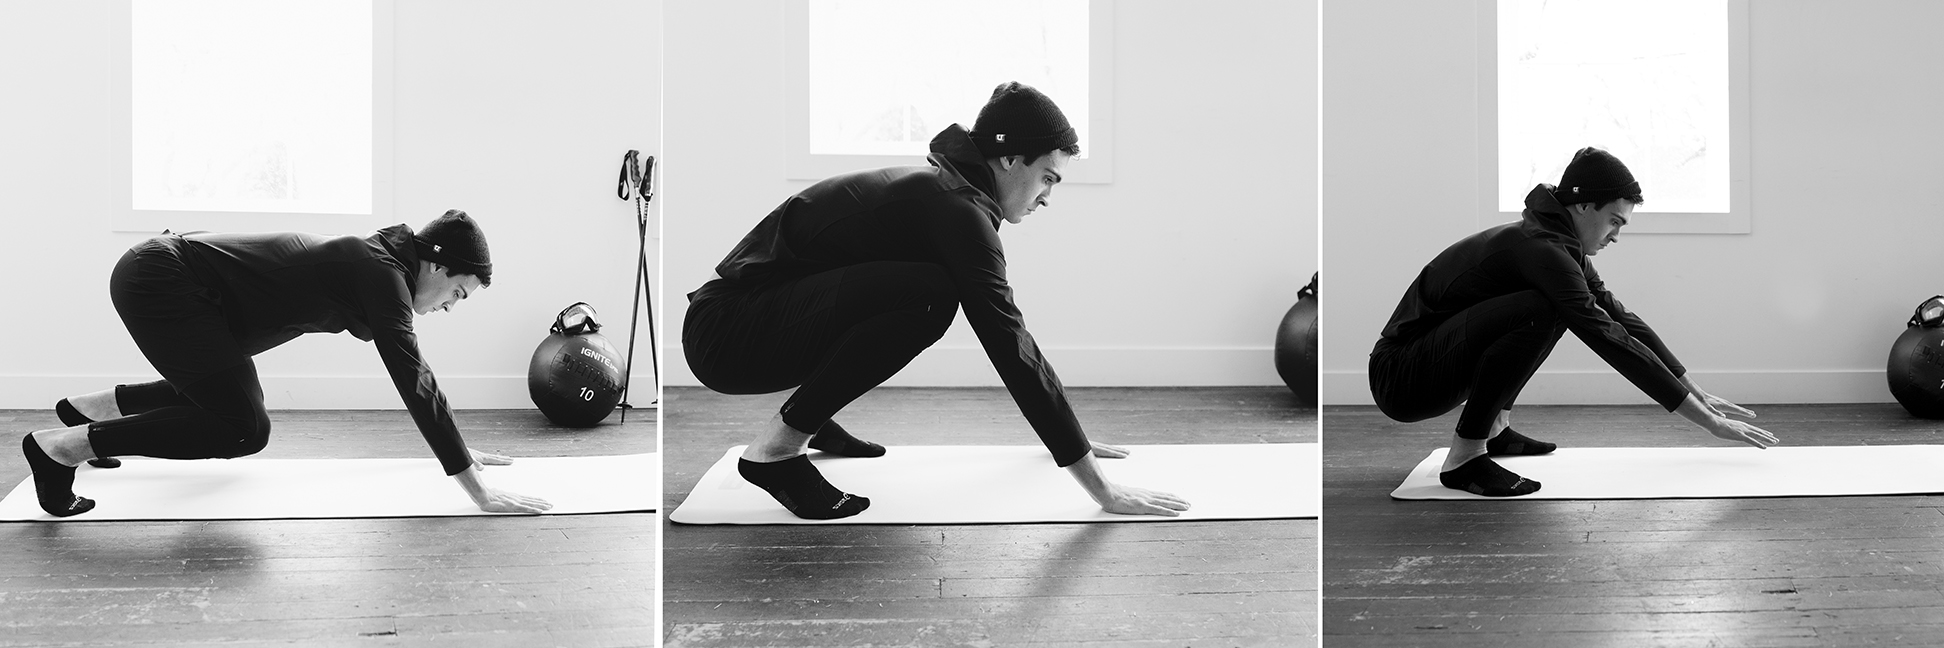 IN ALL FOURS, PLACE TOES ON MAT AND PUSH BODY BACK USING ARMS UNTIL YOUR HEELS ARE FLAT ON THE GROUND. 10 REPS